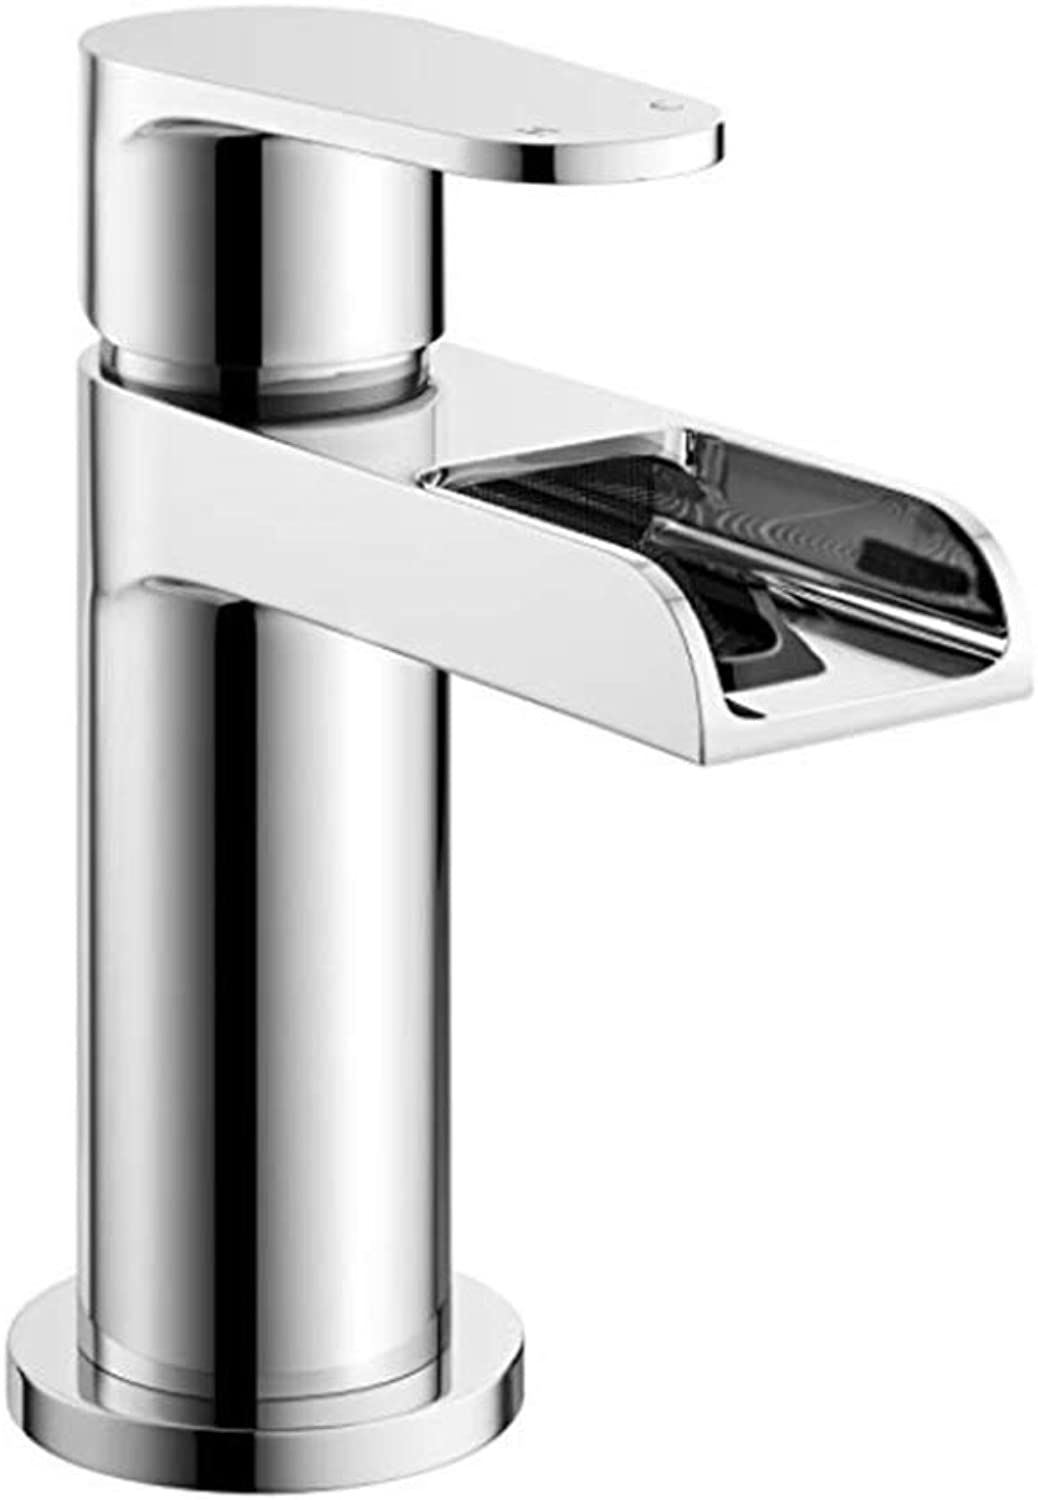 Pull Out The Pull Down Stainless Steelwaterfall Basin Sink Mixer Tap Chrome Bathroom Lever Faucet